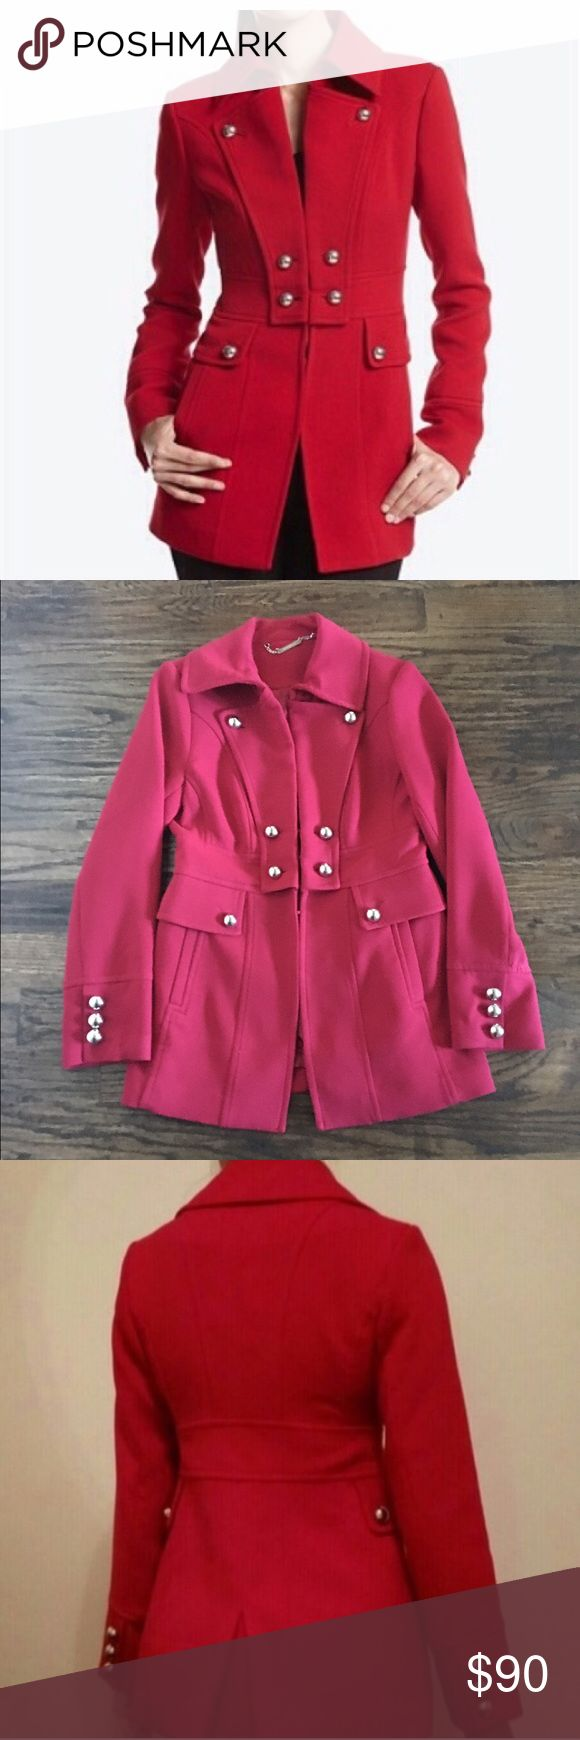 White House Black Market Military Style Coat Excellent condition. Only worn twice. Ponte Stretch Material White House Black Market Jackets & Coats